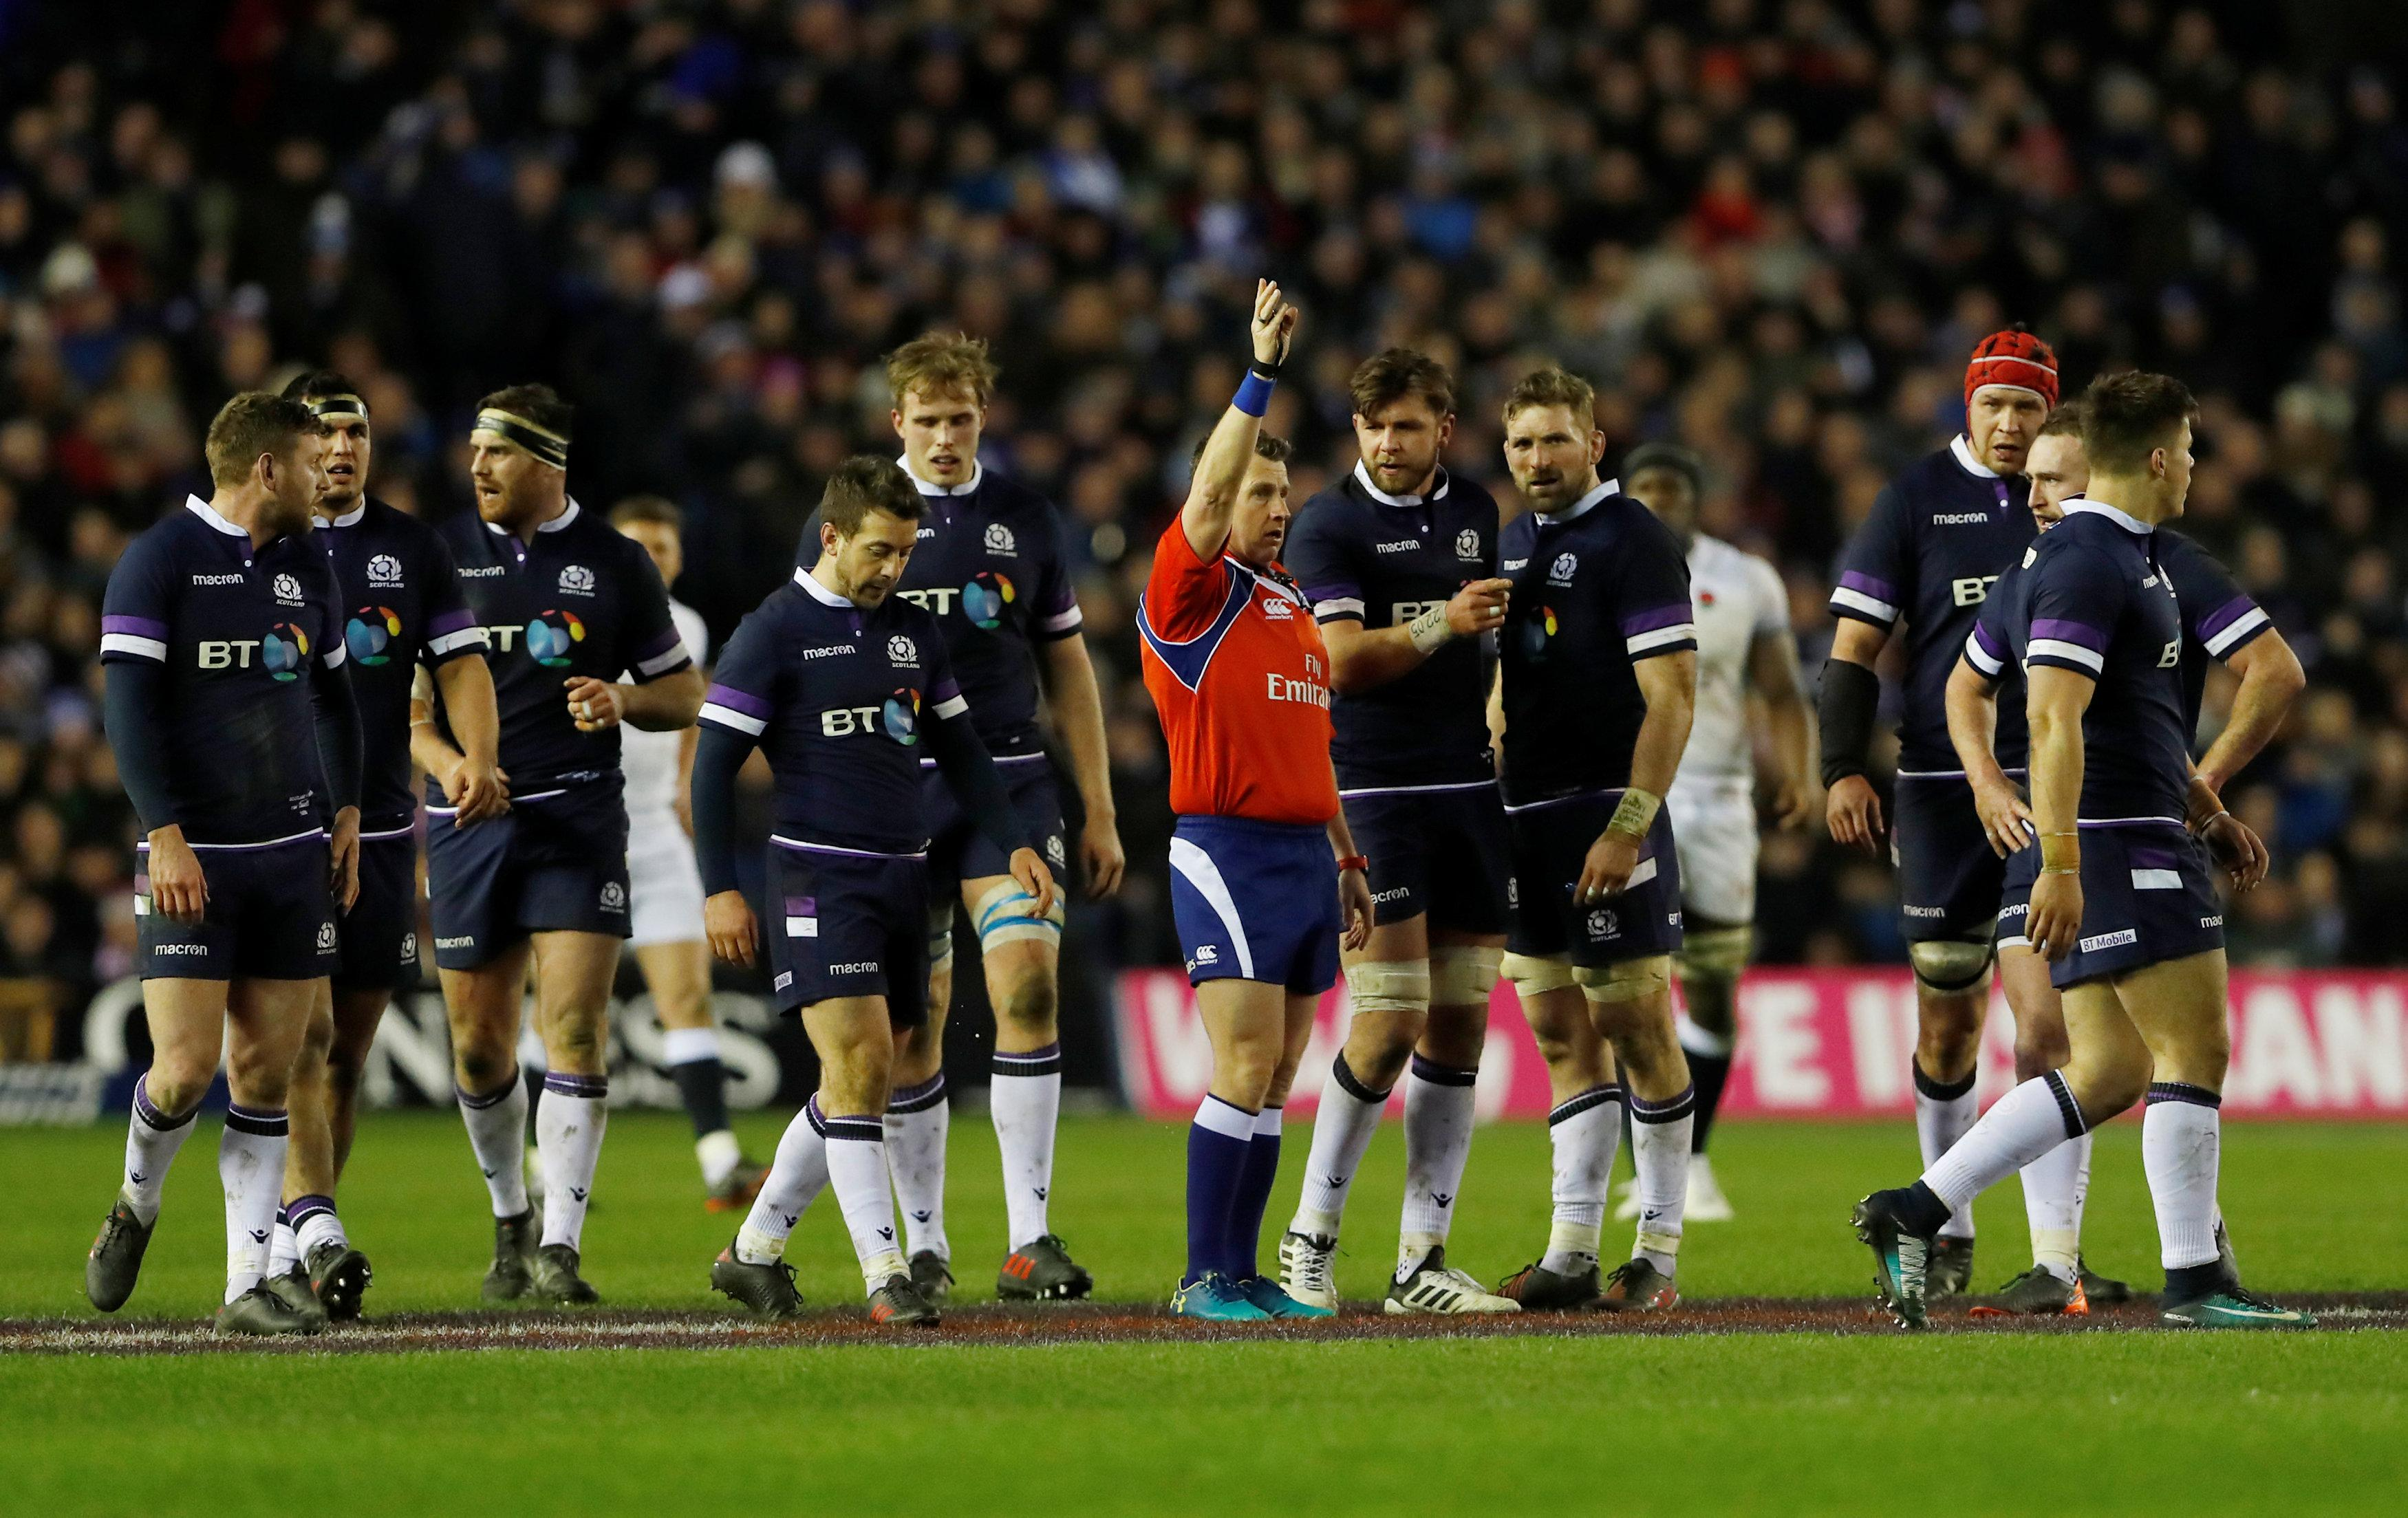 Some England supporters were accused at how top ref Nigel Owens took charge of the clash